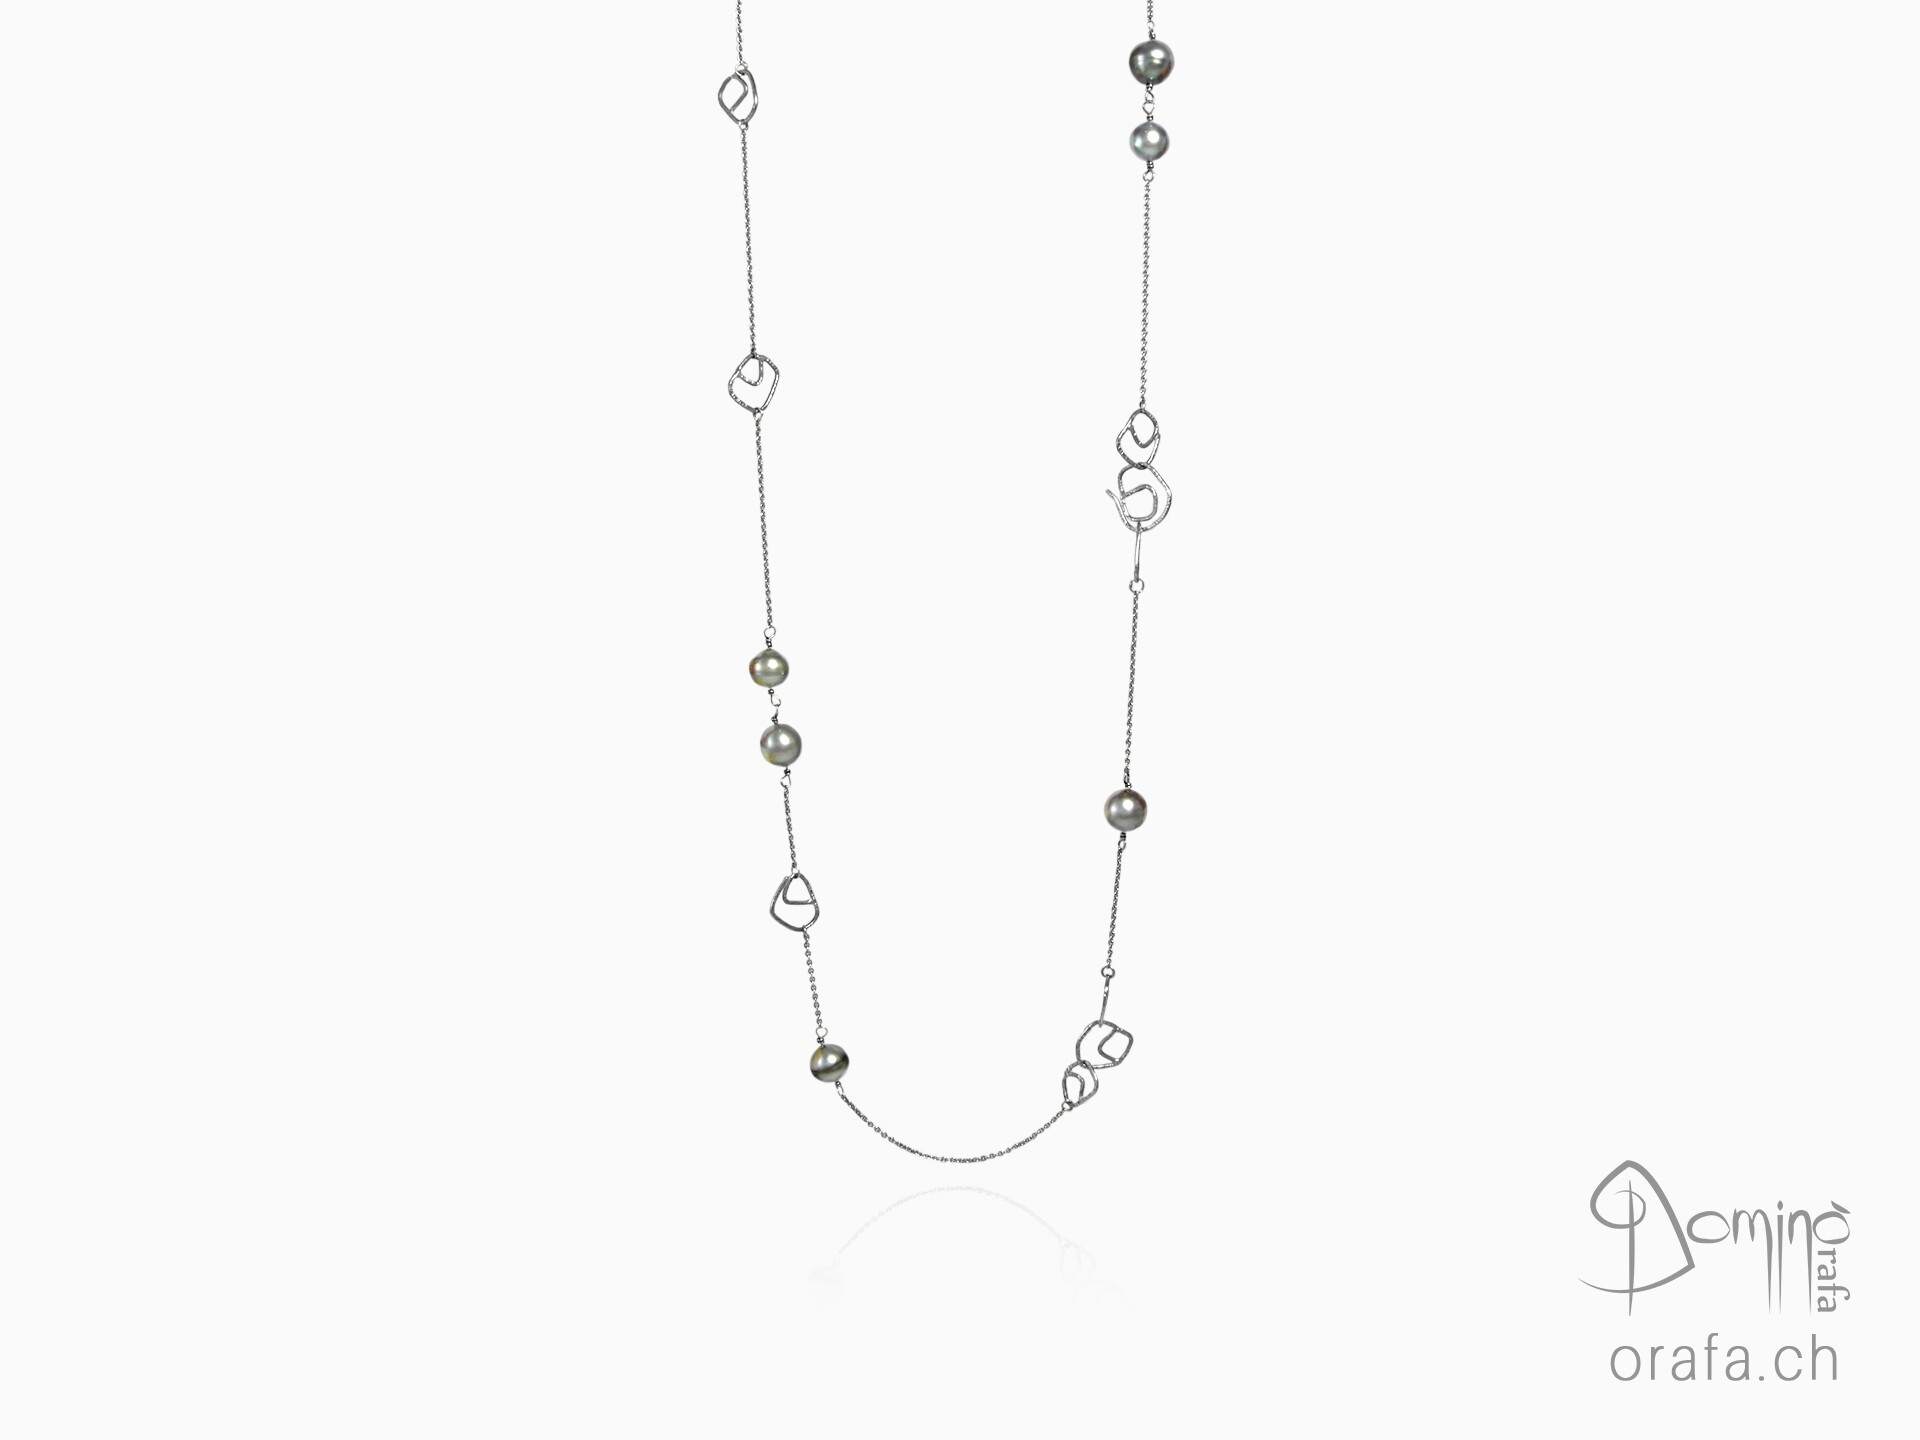 Long necklace, Fantasy elements and tahitian pearls